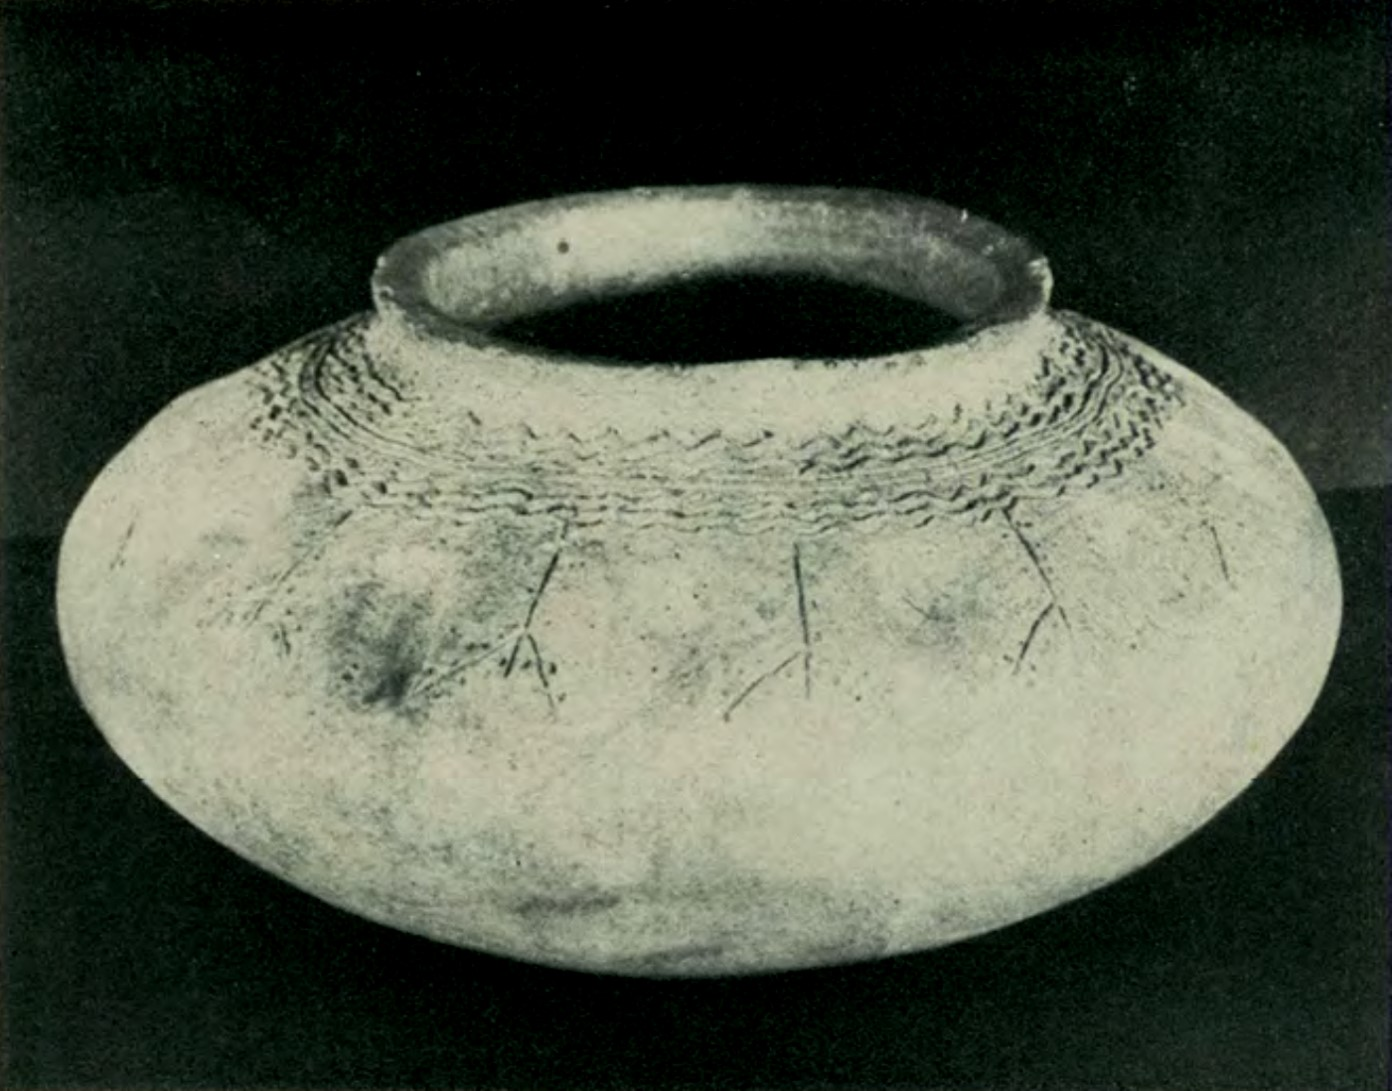 Pot with comb-incised wavy designs recovered from Calatagan